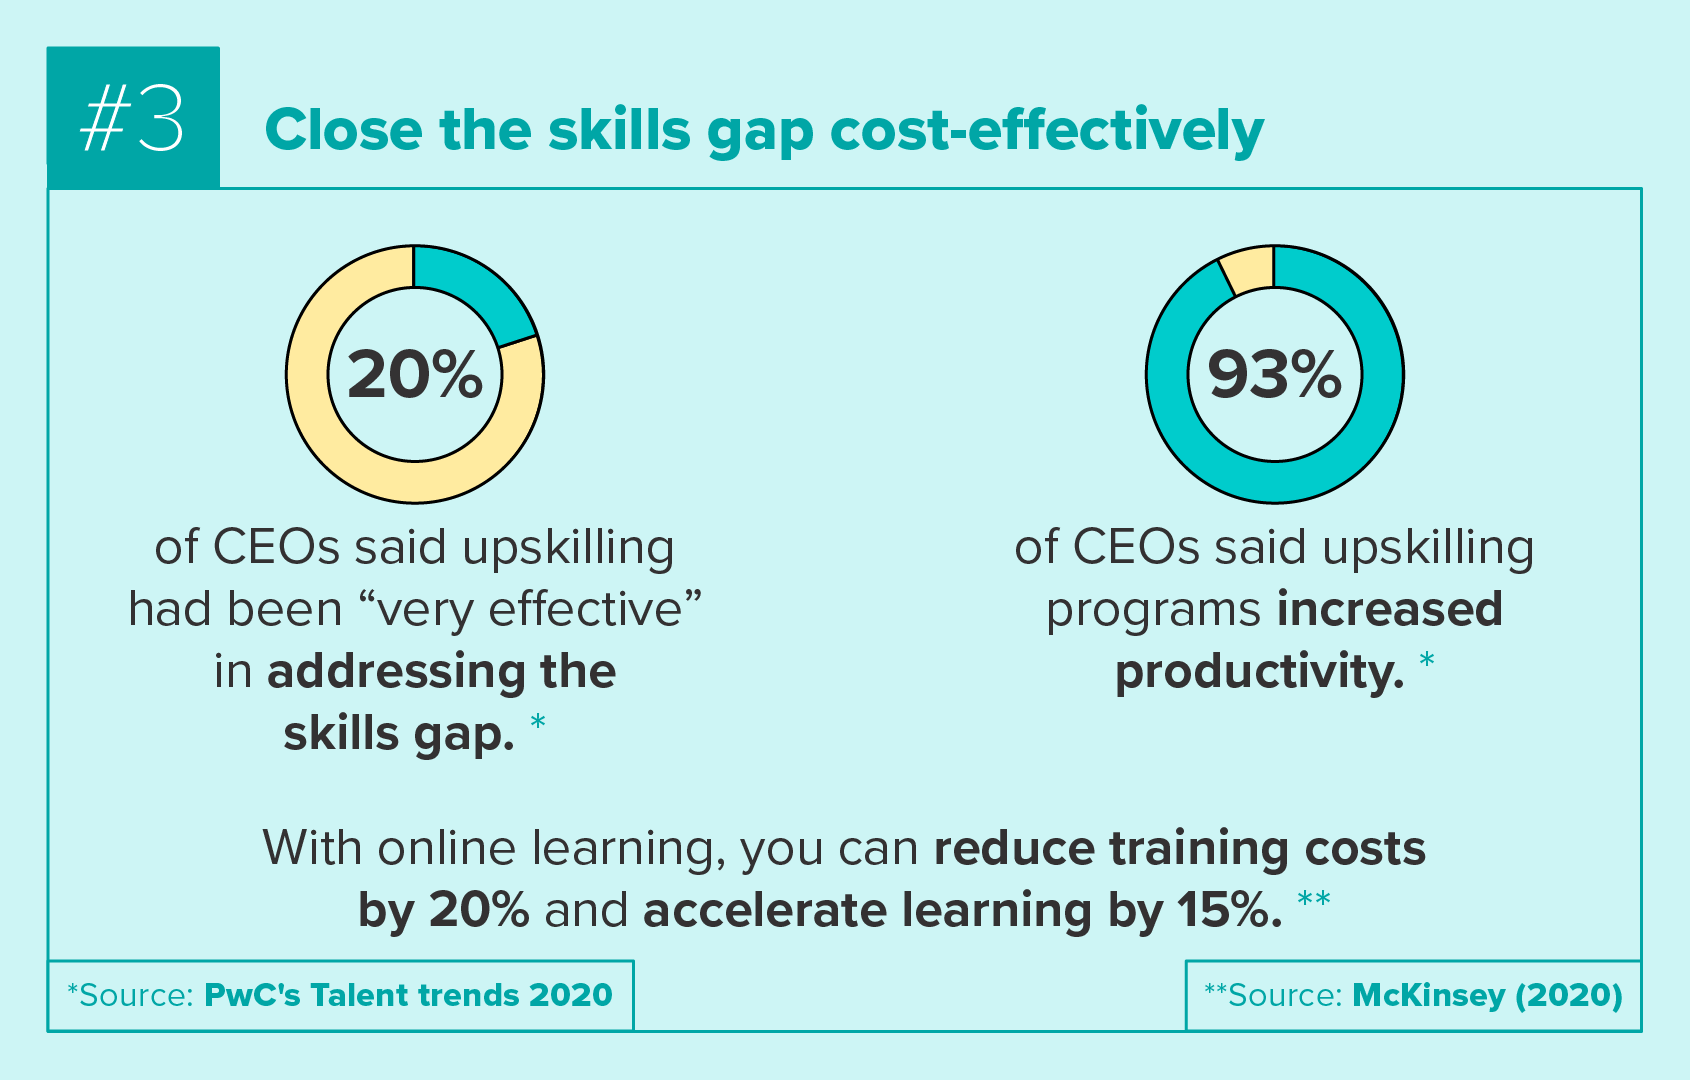 Close the skills gap cost-effectively